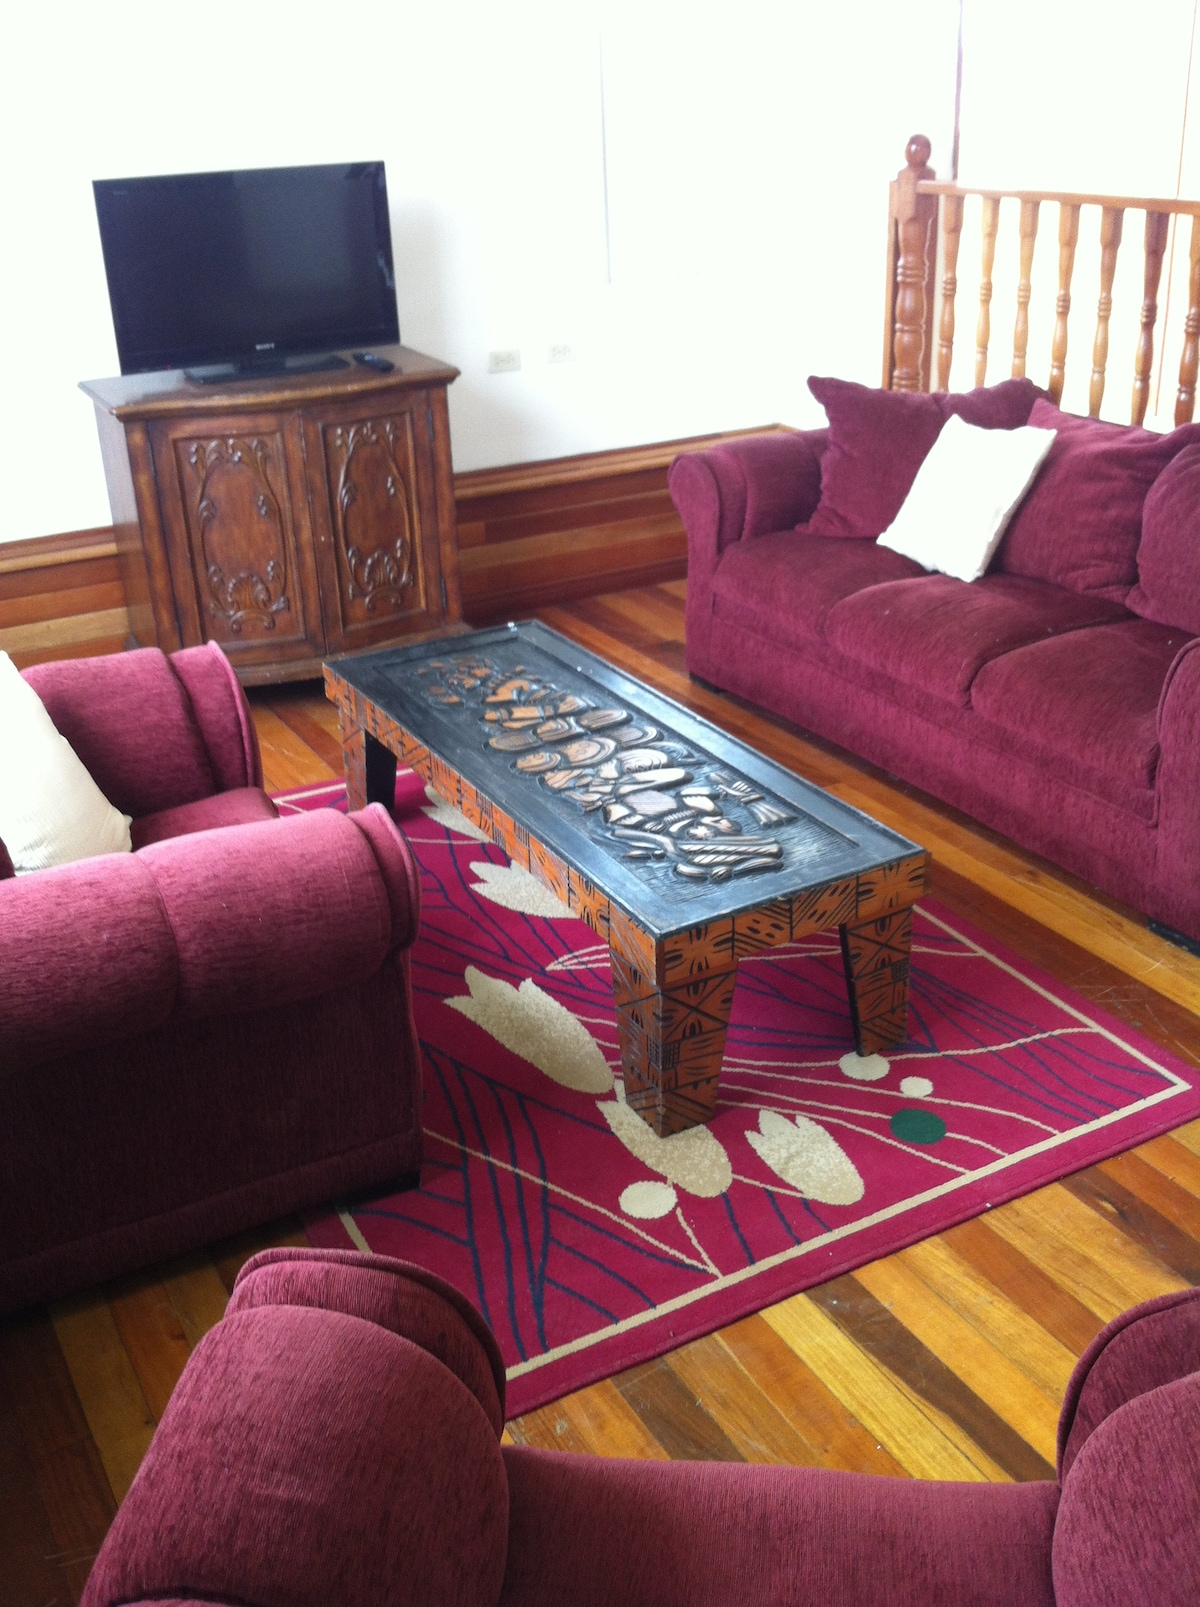 Spacious Great Room Seating Area w/comfy seating and Hardwood Flooring made with Exotic Local Wood